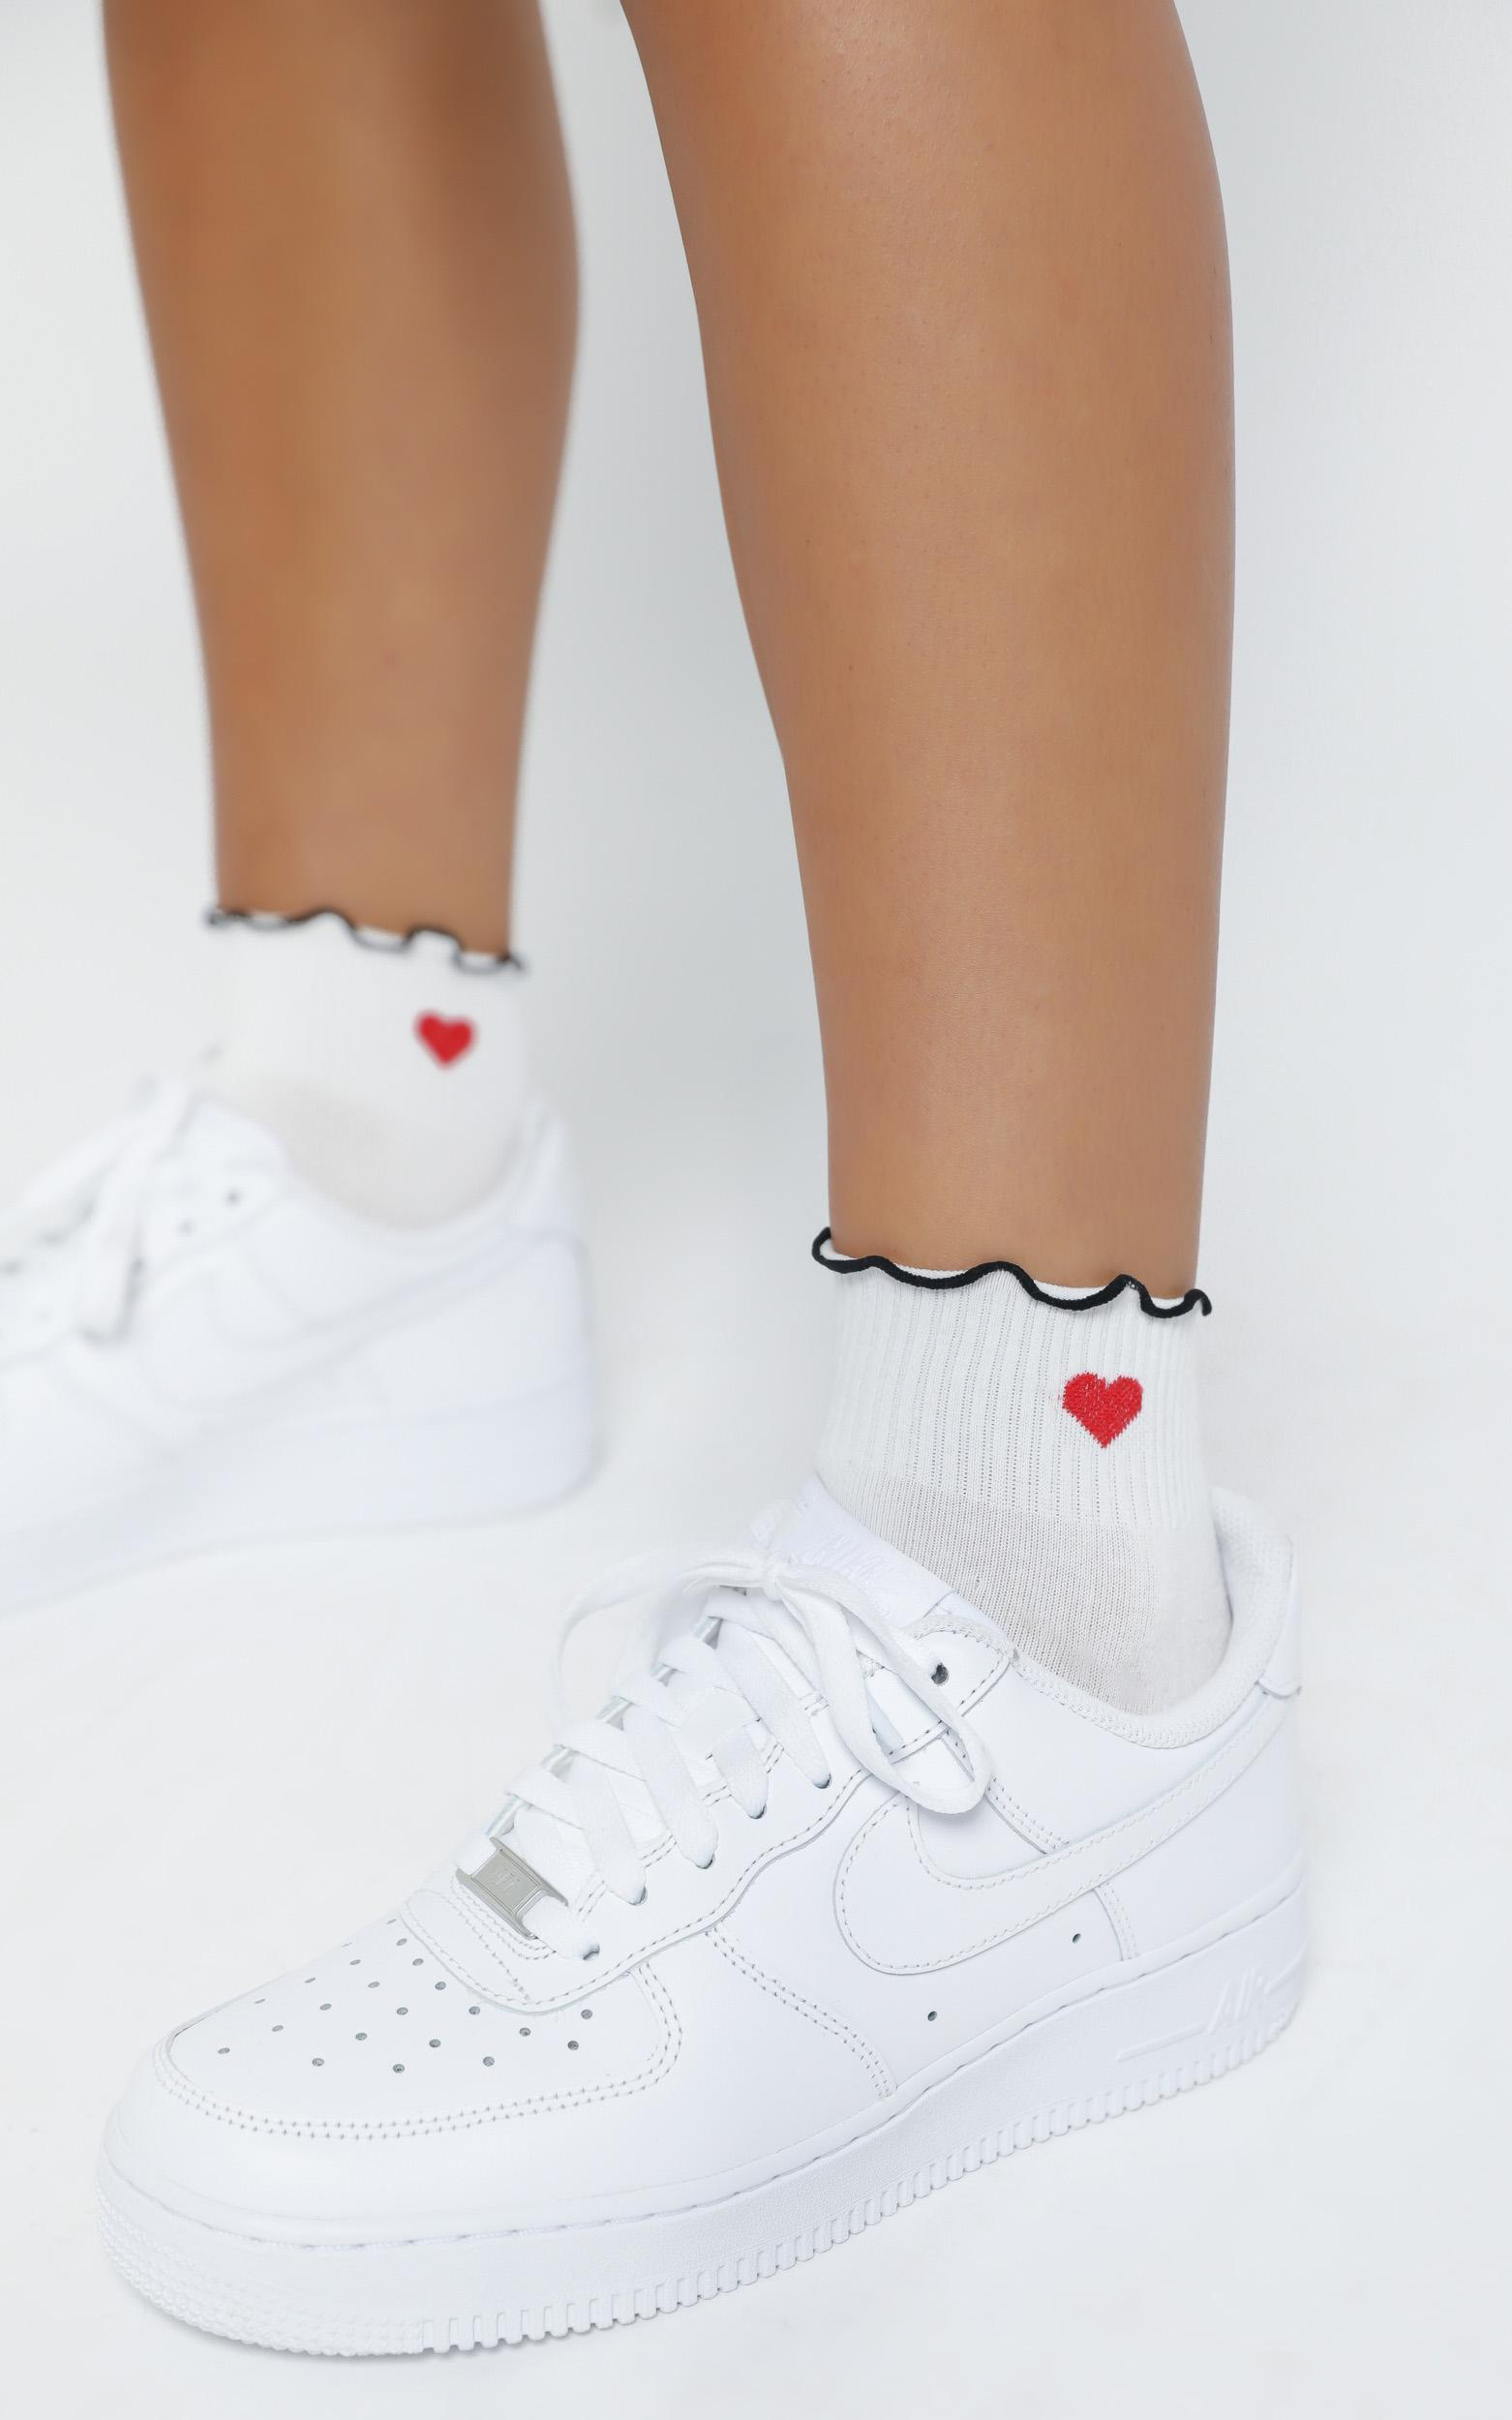 Come Along Heart Socks in White, , hi-res image number null